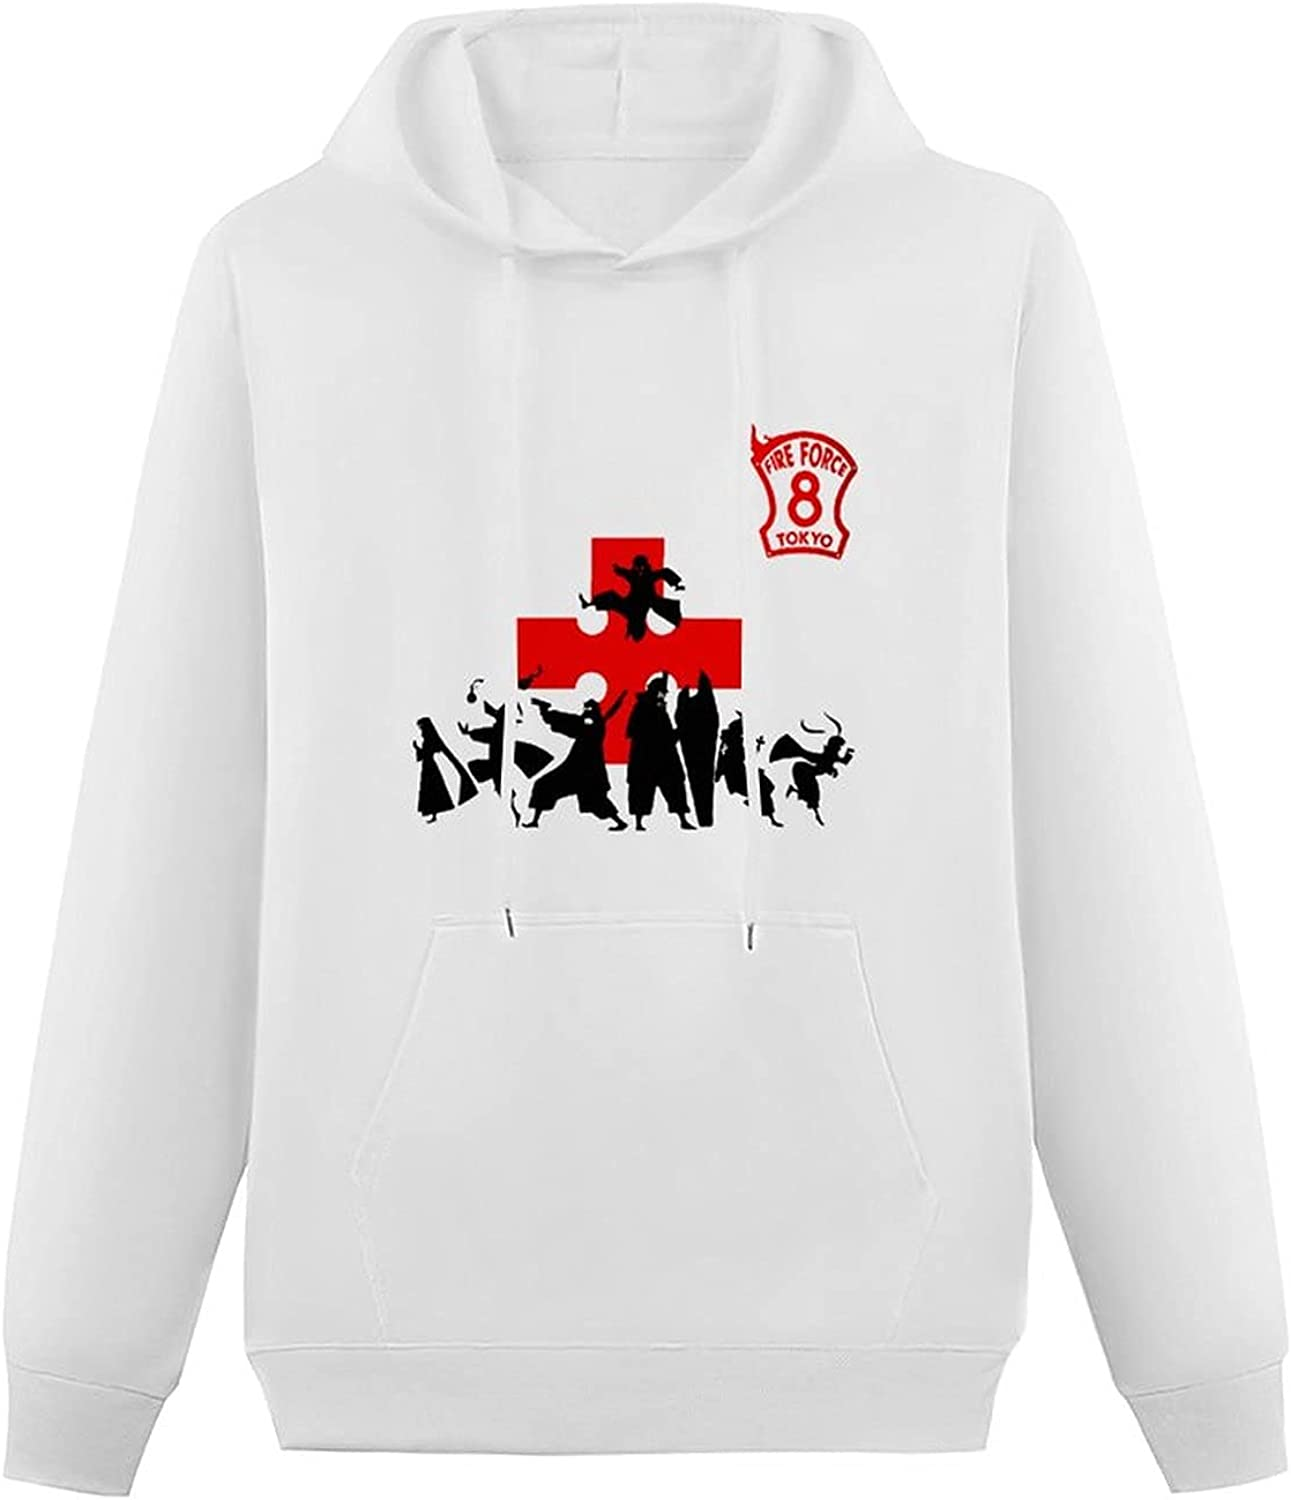 Fire Force Teen Hooded Sweatshirt,Simplicity Pullover Hoodie Sweater for Boys Girls